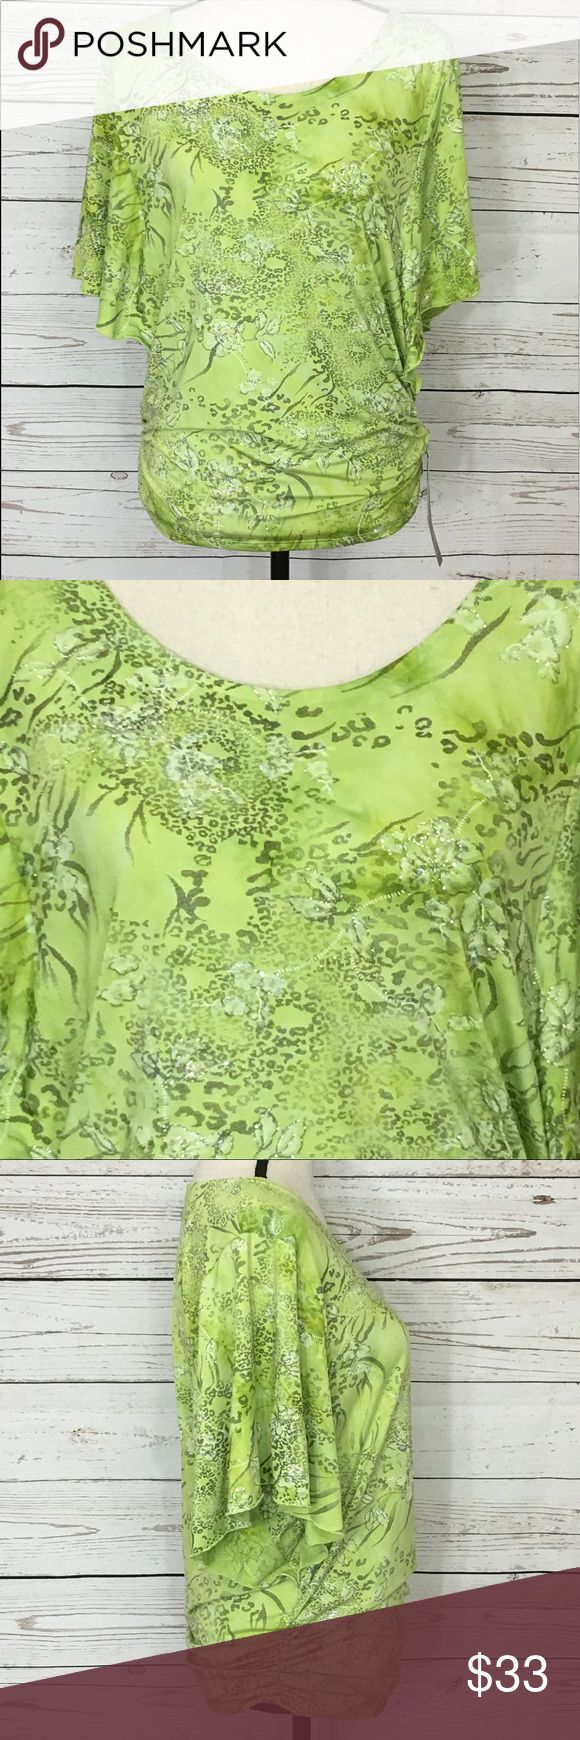 "JM Collection Batwing Angel Sleeve Glitter Blouse Beautiful green with silver glitter blouse with batwing, angel sleeves. The sides of the blouse are ruched. New with tags.  Bust: (M-40""); Length in the back from the shoulder:  (M-25""). Measurements are approximate. Smoke free home. 🌺Thanks for shopping my closet !🌹 JM Collection Tops Blouses"